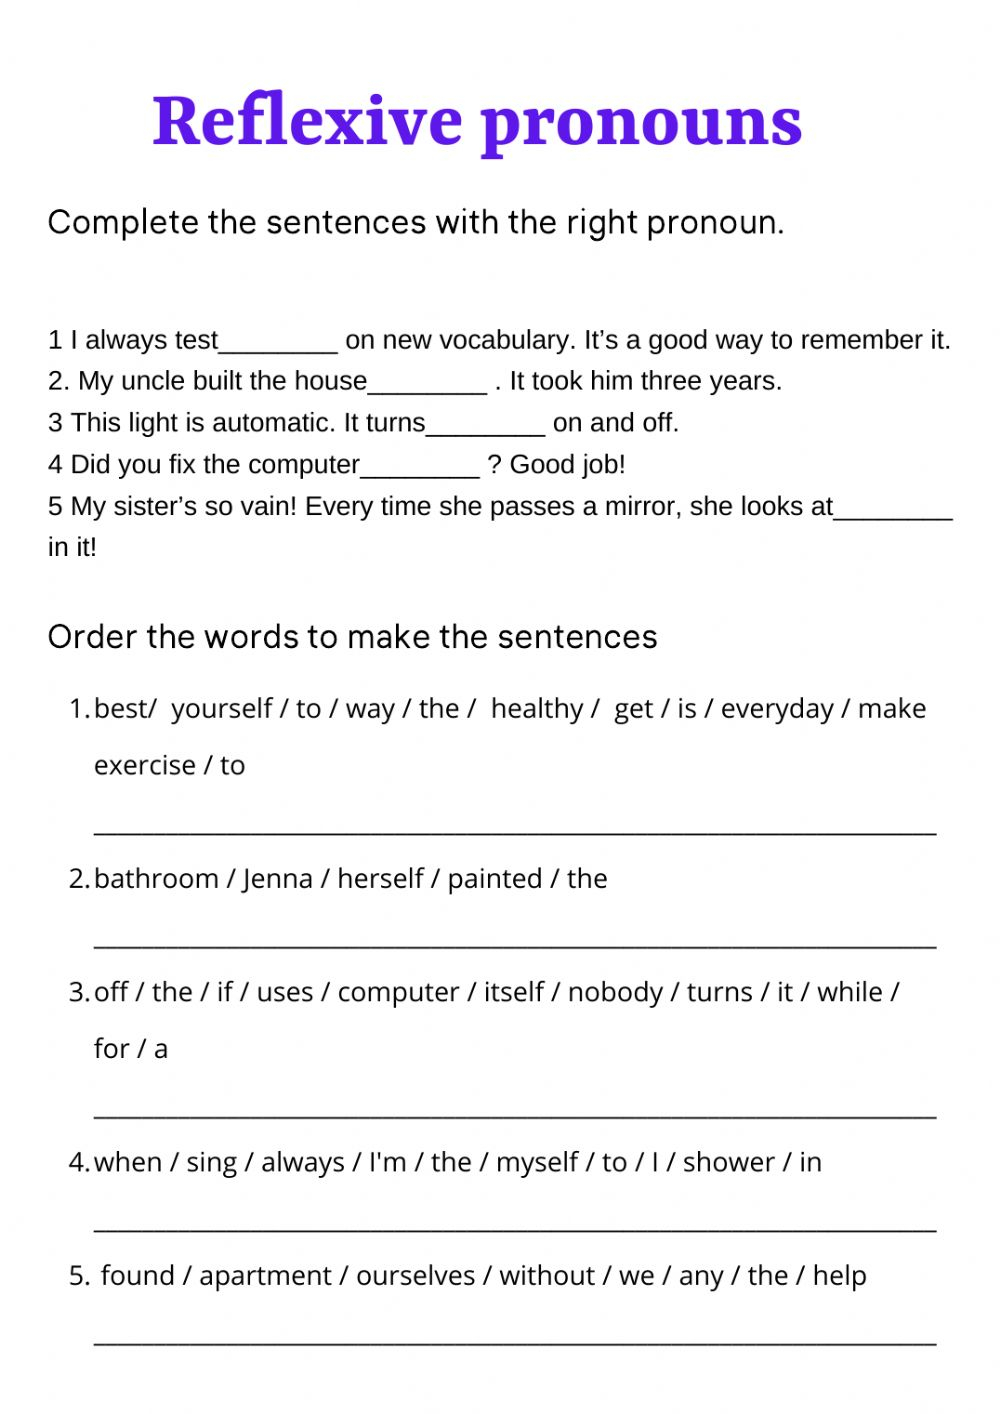 hight resolution of Reflexive pronouns zsciencez activity